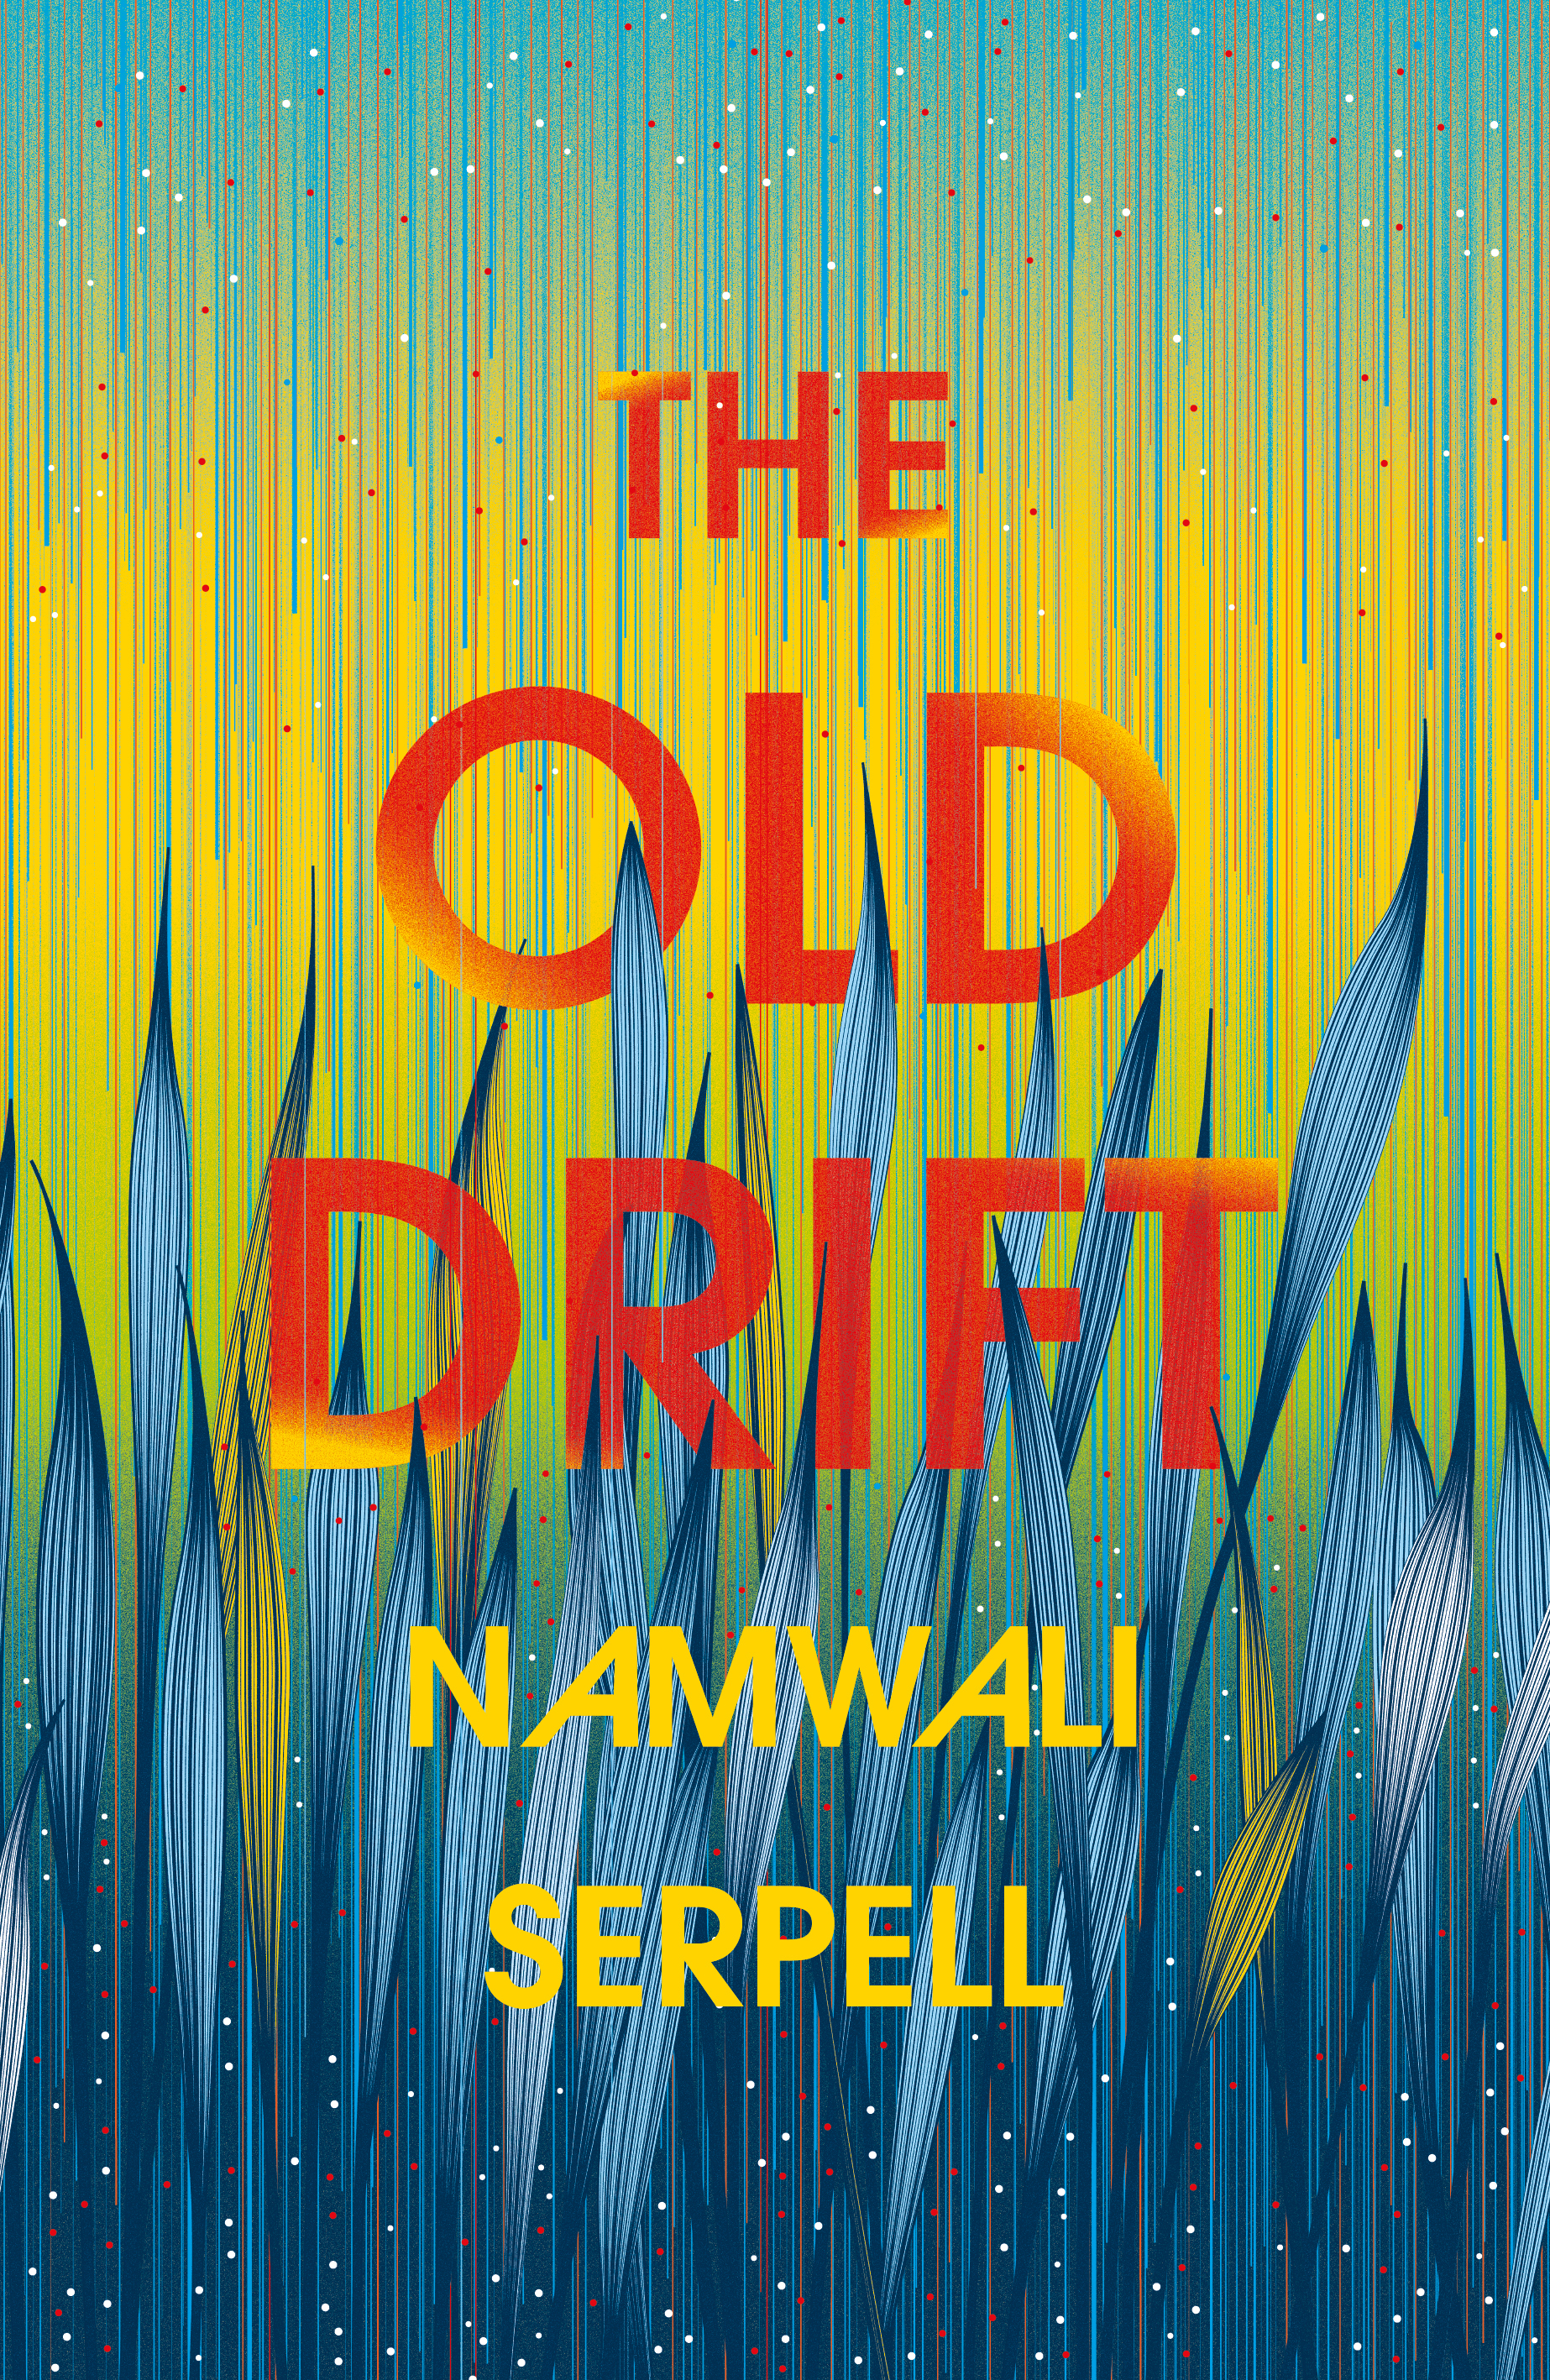 """Extraordinary, ambitious, evocative…. A dazzling debut, establishing Namwali Serpell as a writer on the world stage.""SALMAN RUSHDIE, The New York Times Book Review (cover) - ""This is a dazzling book, as ambitious as any first novel published this decade. It made the skin on the back of my neck prickle…."" DWIGHT GARNER, The New York Times""Astonishing."" ★ Publishers Weekly ★""Unforgettable."" ★ Booklist ★""Restless ingenuity."" ★ Kirkus Reviews ★""Stunning."" ★ Library Journal ★"